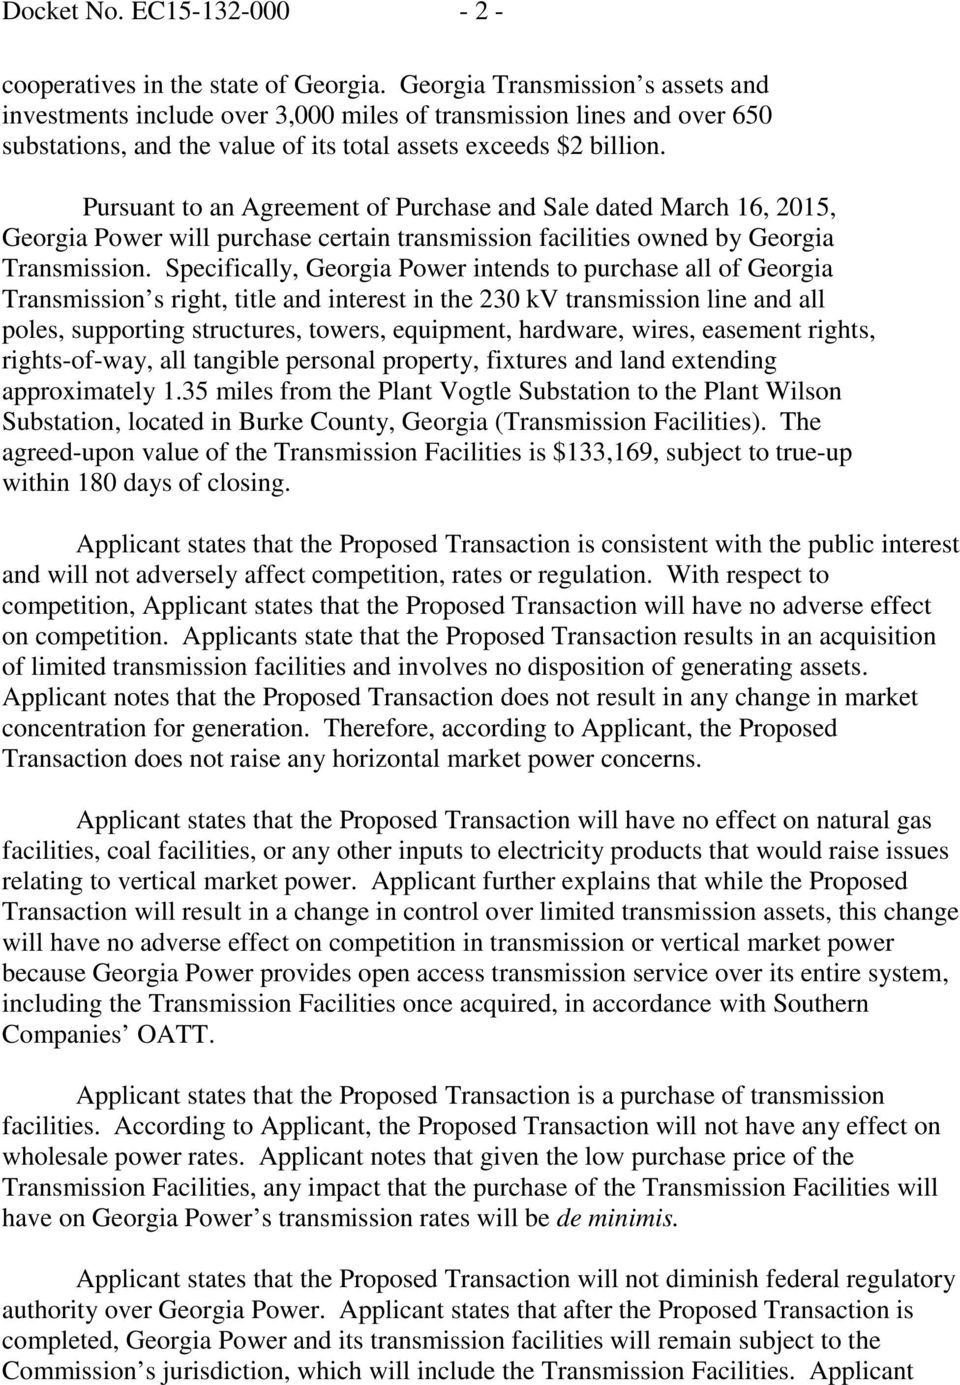 Pursuant to an Agreement of Purchase and Sale dated March 16, 2015, Georgia Power will purchase certain transmission facilities owned by Georgia Transmission.